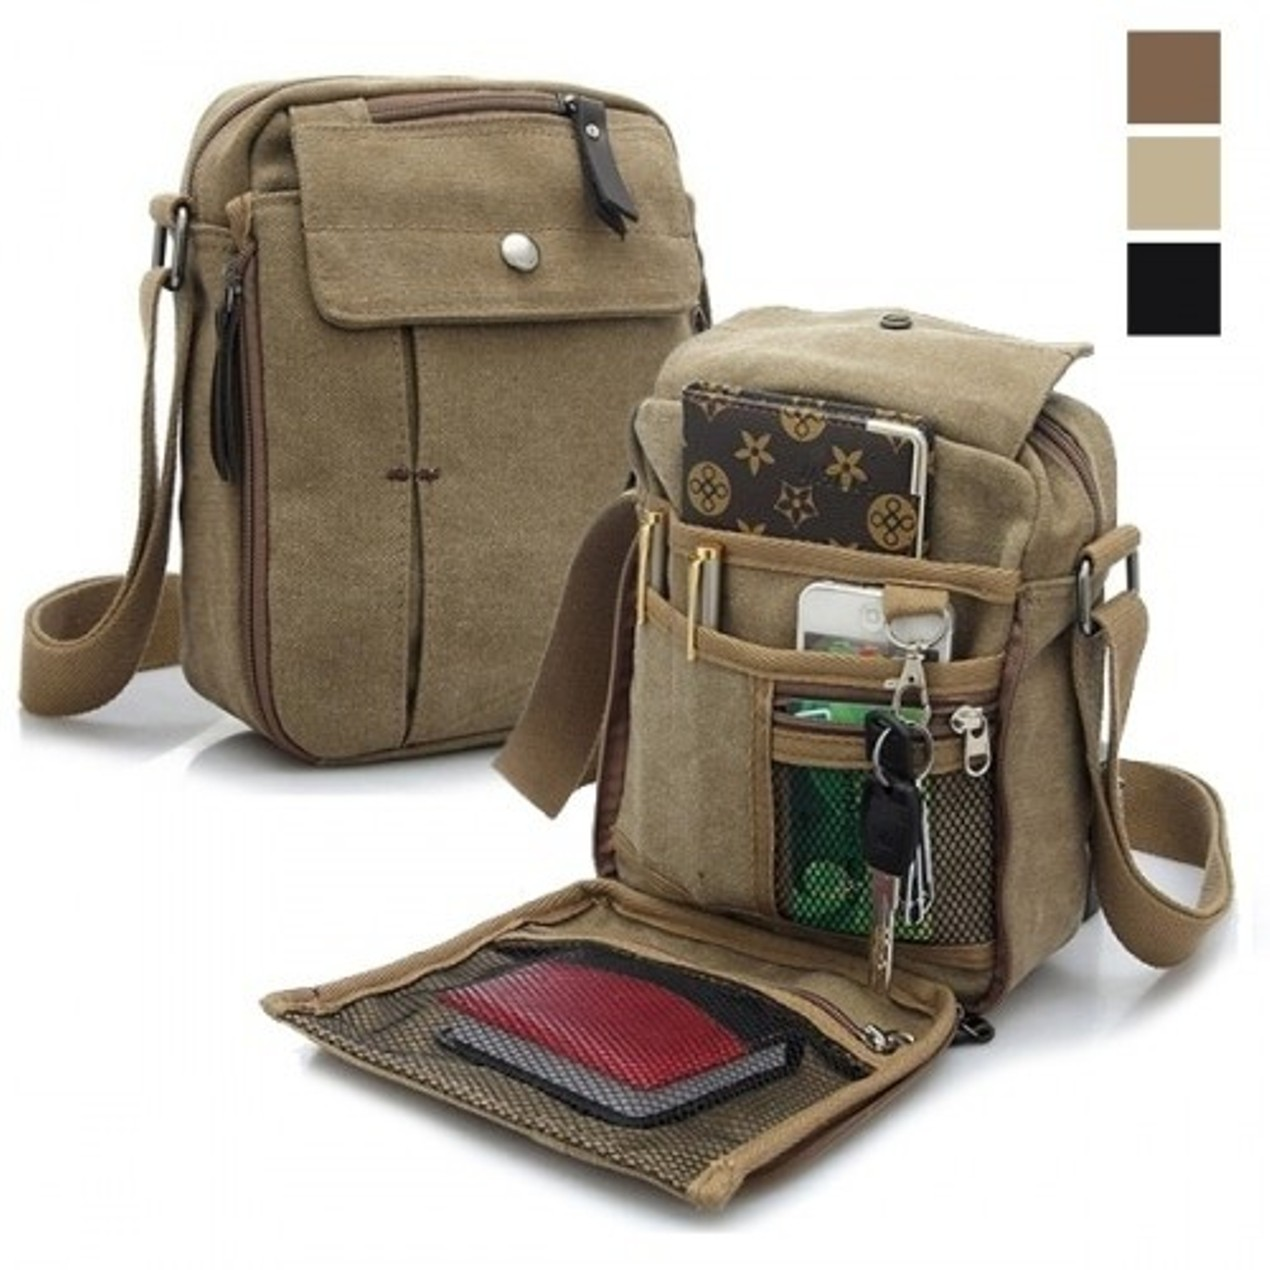 94002df1c1 Valencia Multifunctional Canvas Traveling Bag - 3 Colors - Tanga